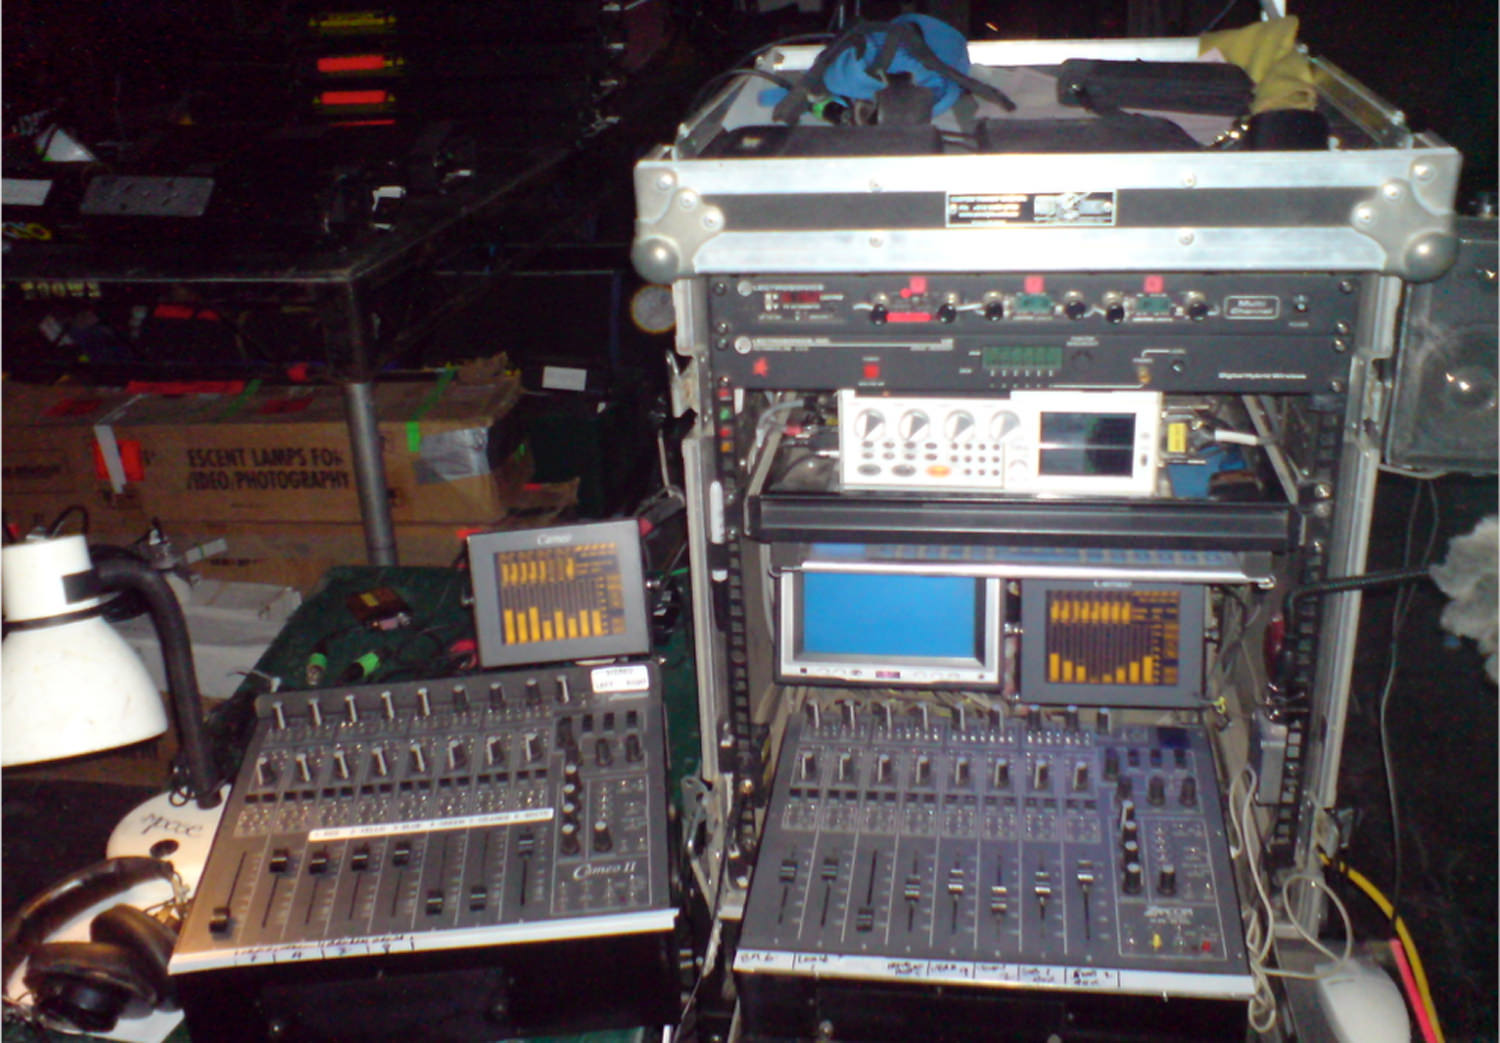 My digital recoding set up for the last day on The Pacific 2010 after 10 months. Using two Zaxcom Cameo 8 track digital mixers. I was mixing 14 microphones down to an 8 track Zaxcom Deva 4 Hard Disk recorder. Above is a rack of 12 wireless microphones feeding into the mixers. The blue screen is a video monitor from the main movie cameraso I could follow the action. I built all my own carts as they suited my style of work better than manufactured ones and could be adapted to the requirements of each different job.These two $25,000 mixers became obsolete after this job and had to be replaced with a newer one.